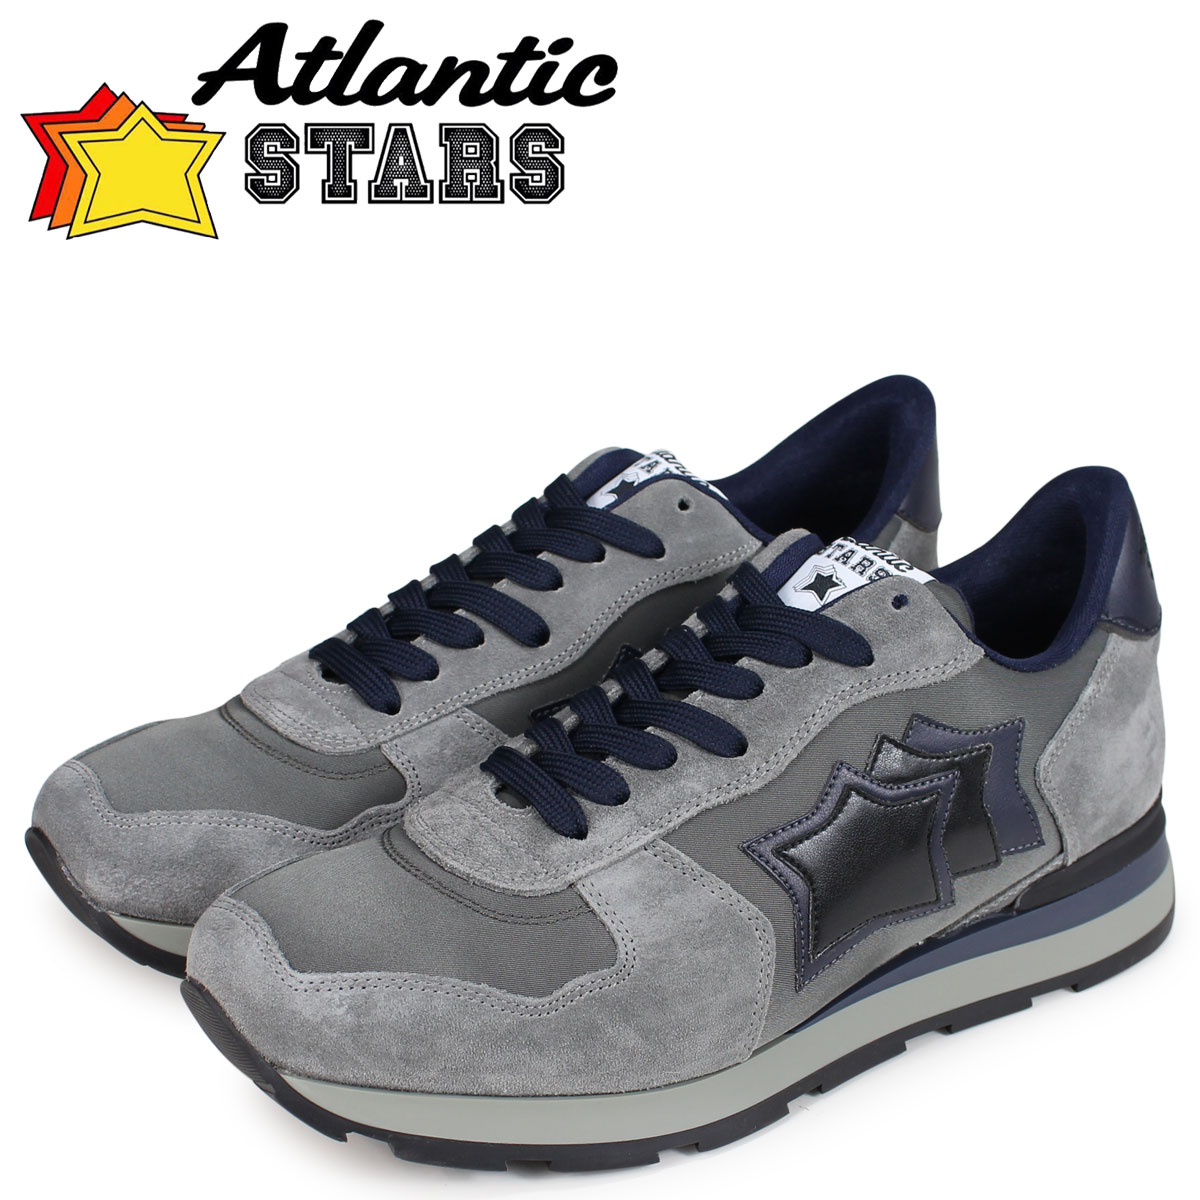 0e3d52f4c66ebb Atlantic STARS men sneakers Atlantic Stars Antares ANTARES GA-06N gray   load planned Shinnyu load in reservation product 10 16 containing